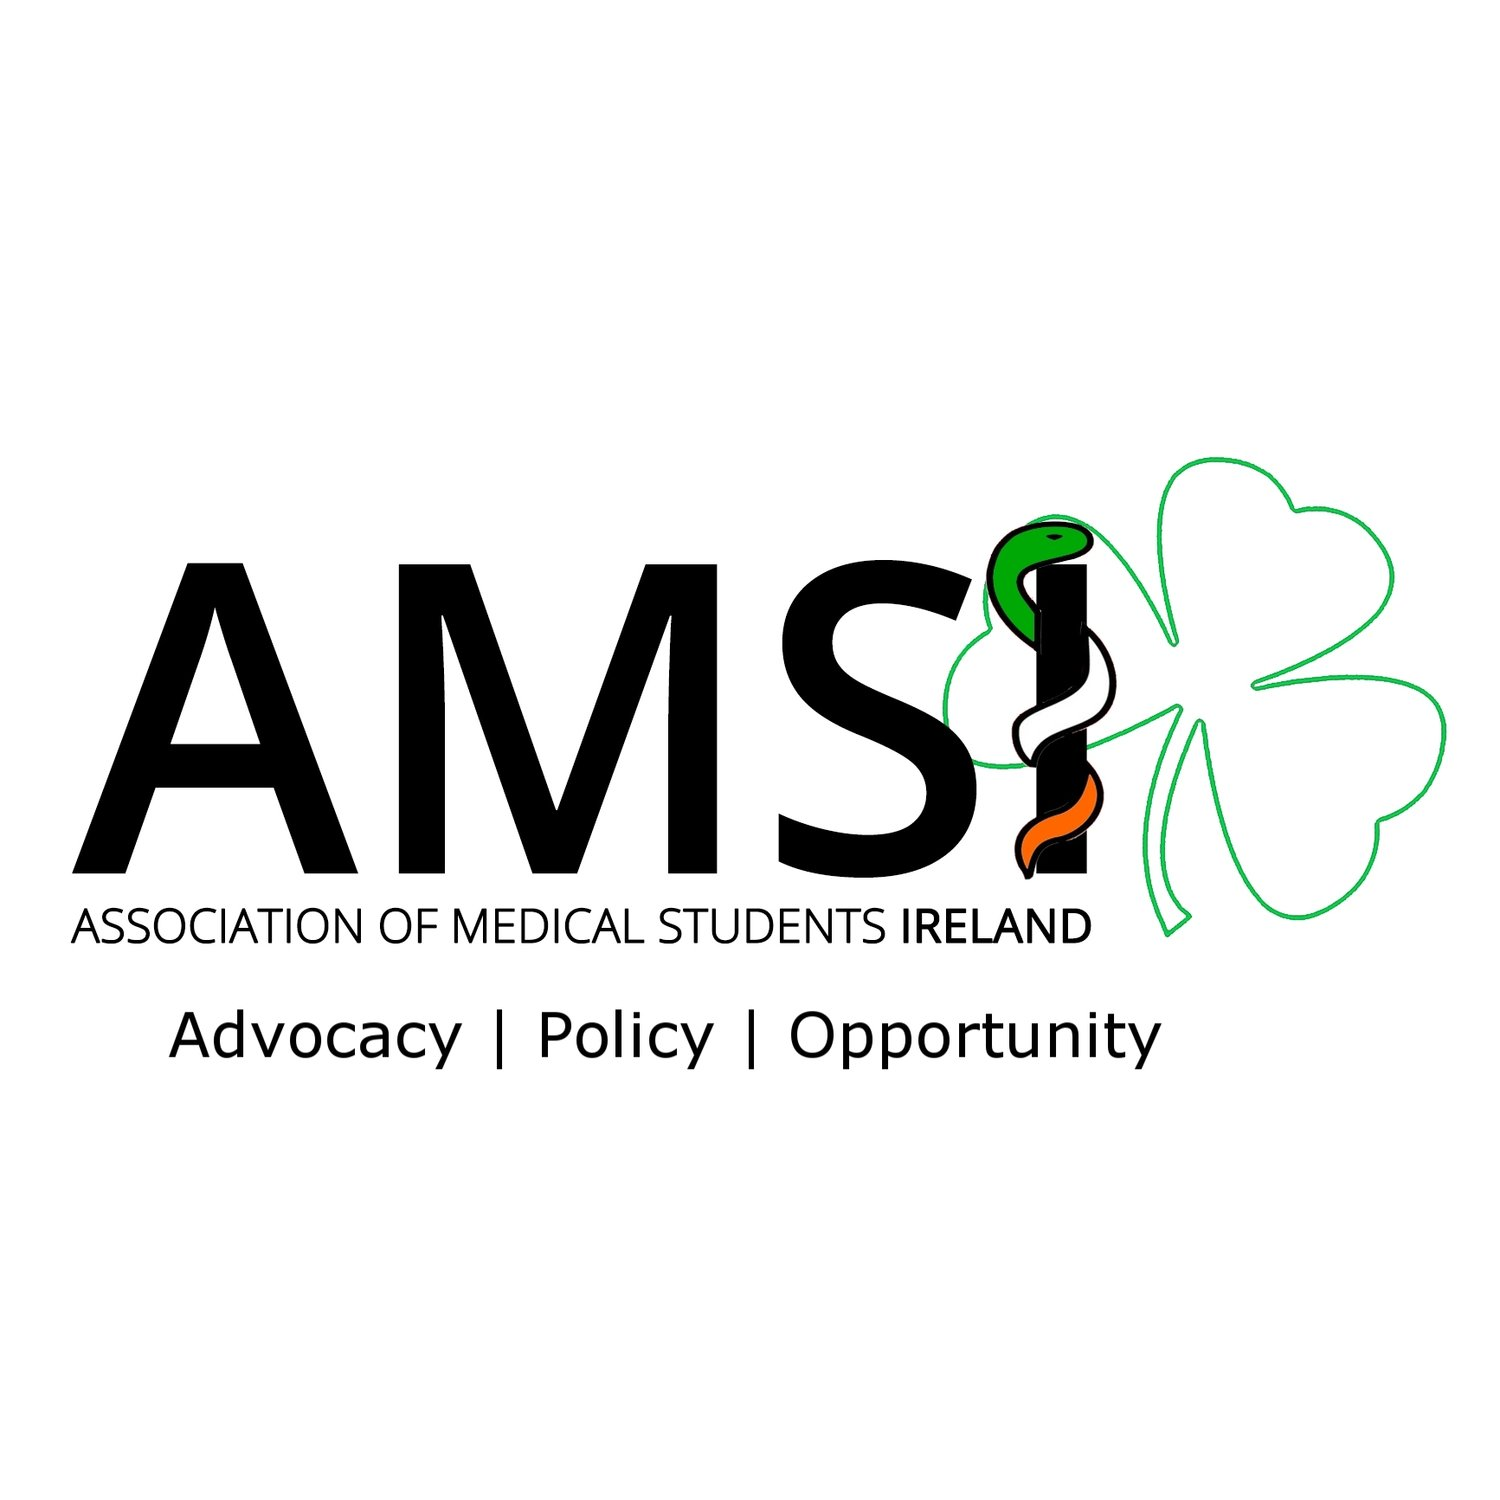 The Association of Medical Students, Ireland